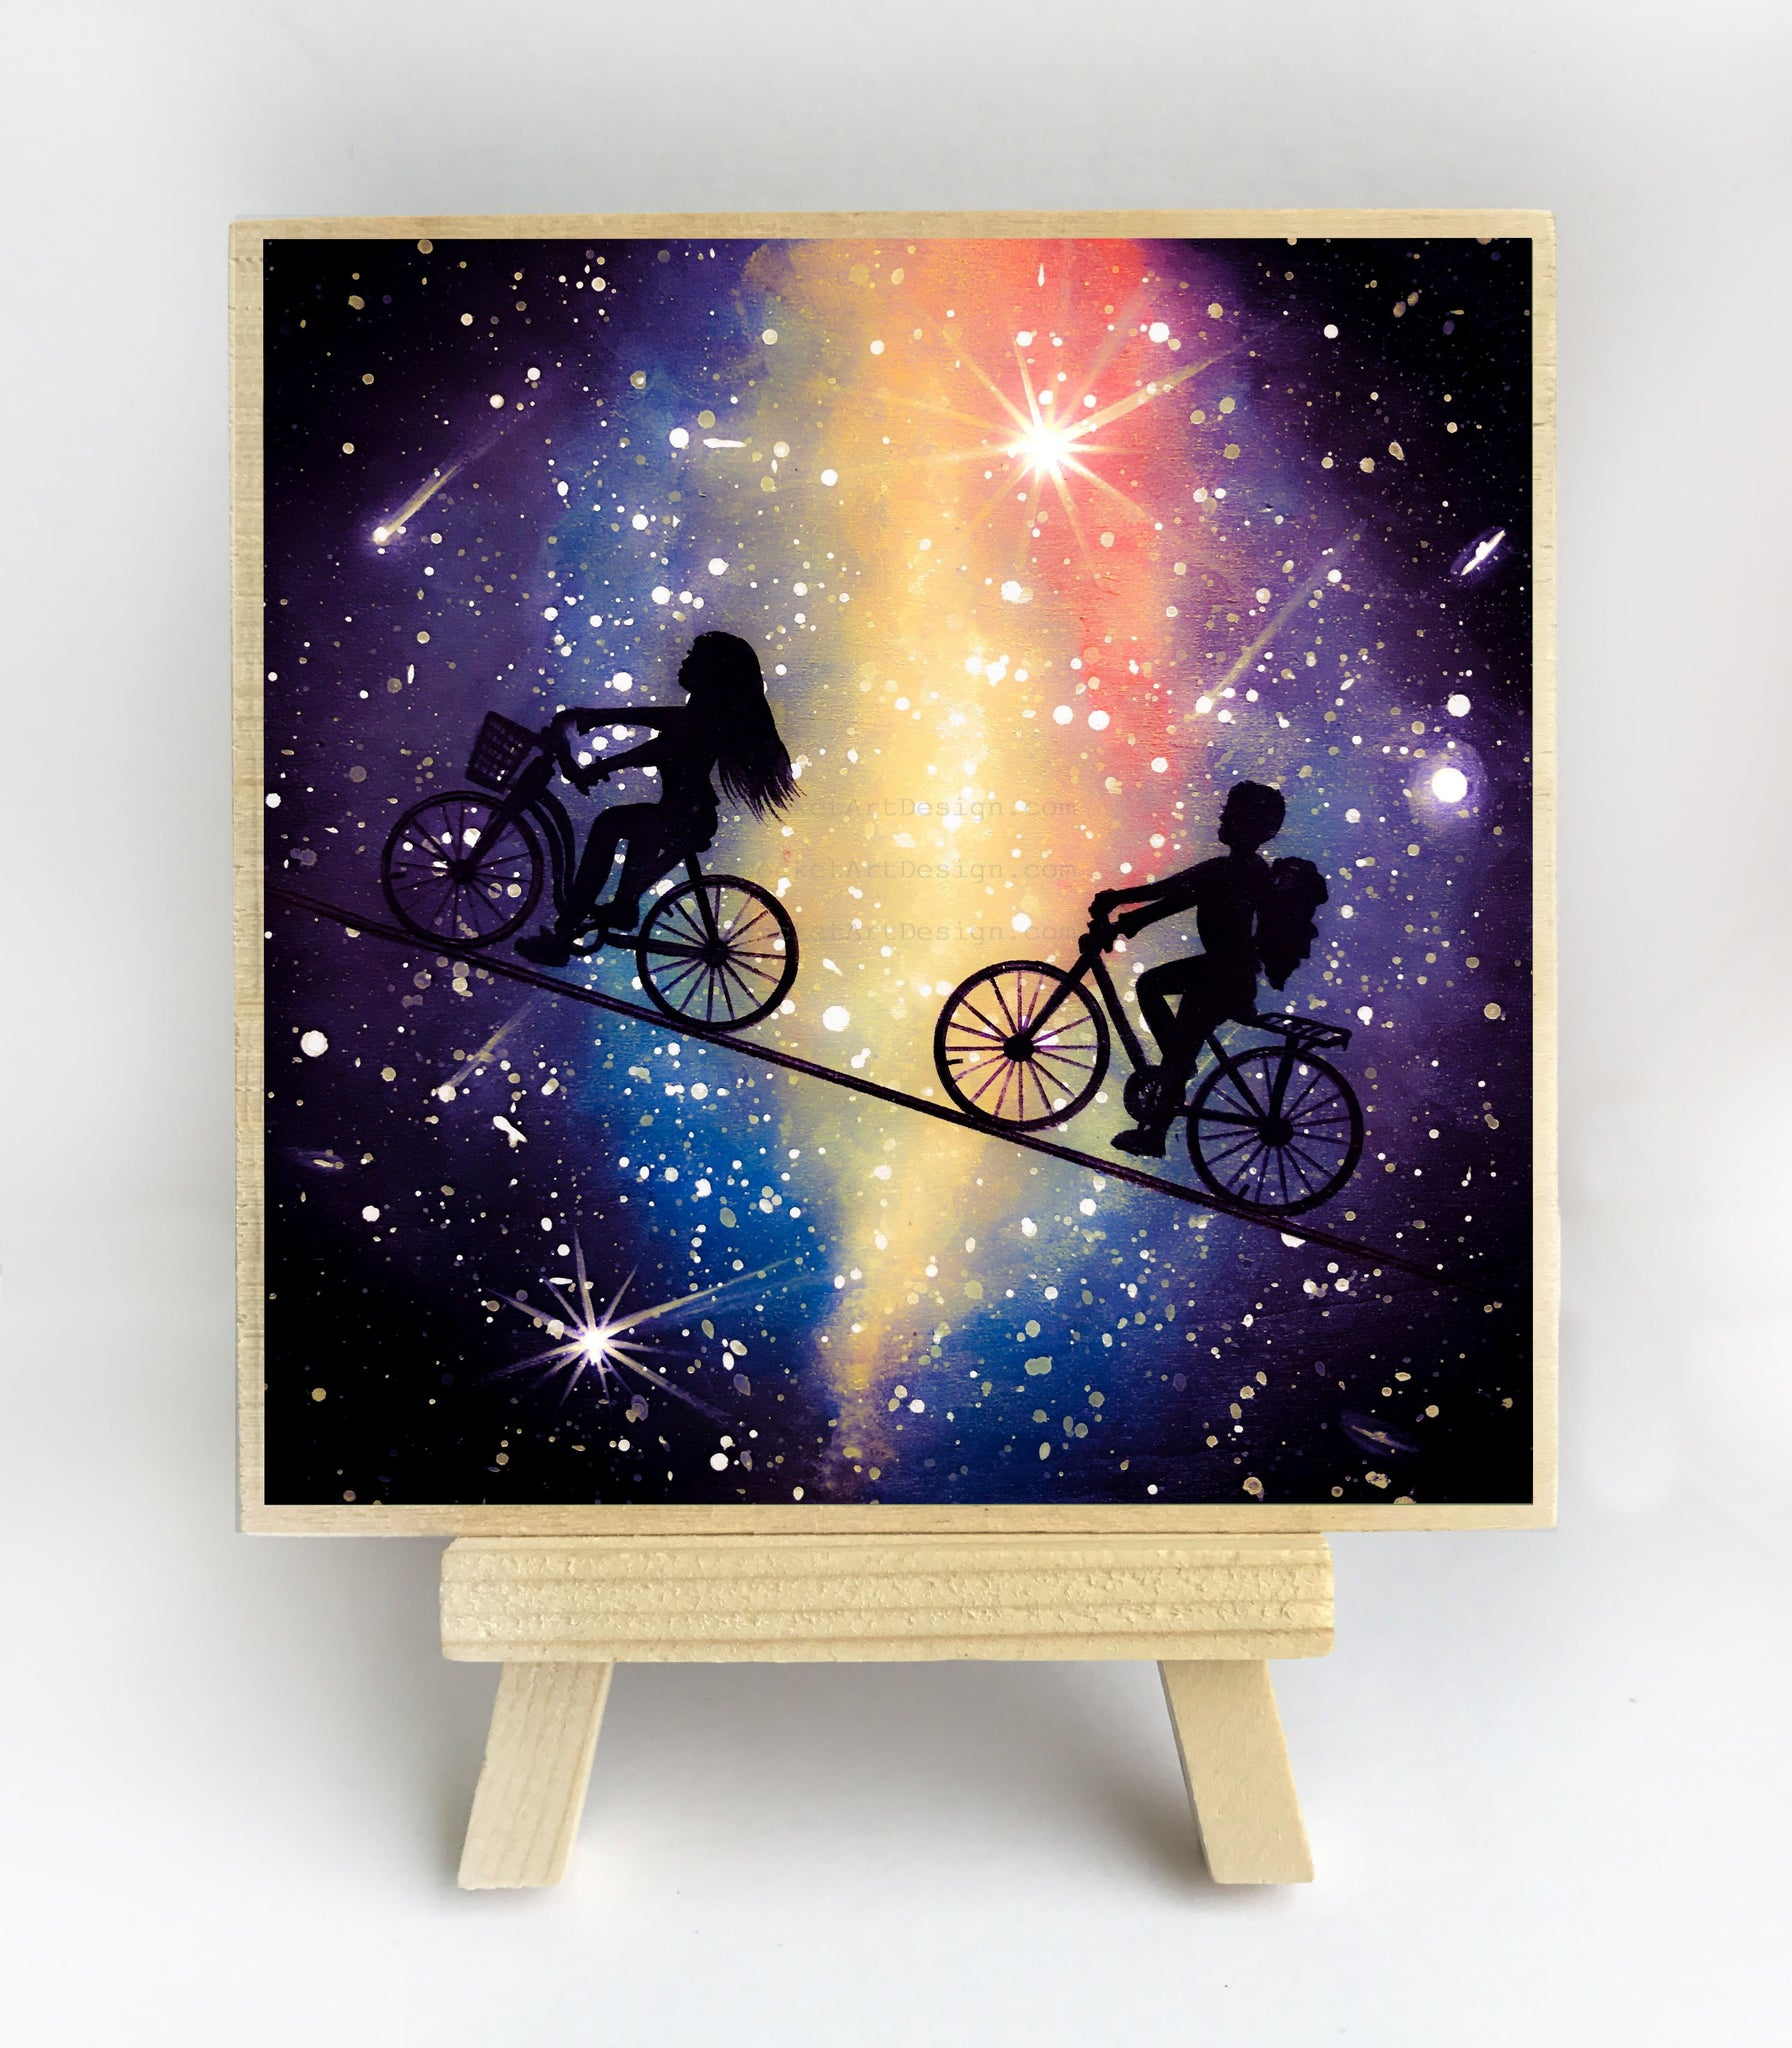 Riding bicycles in the sky - night - silhouette - original miniature art print on 4 x 4 wood-Print-Easel Wood-PocketArtDesigns-Original Art-wall rt